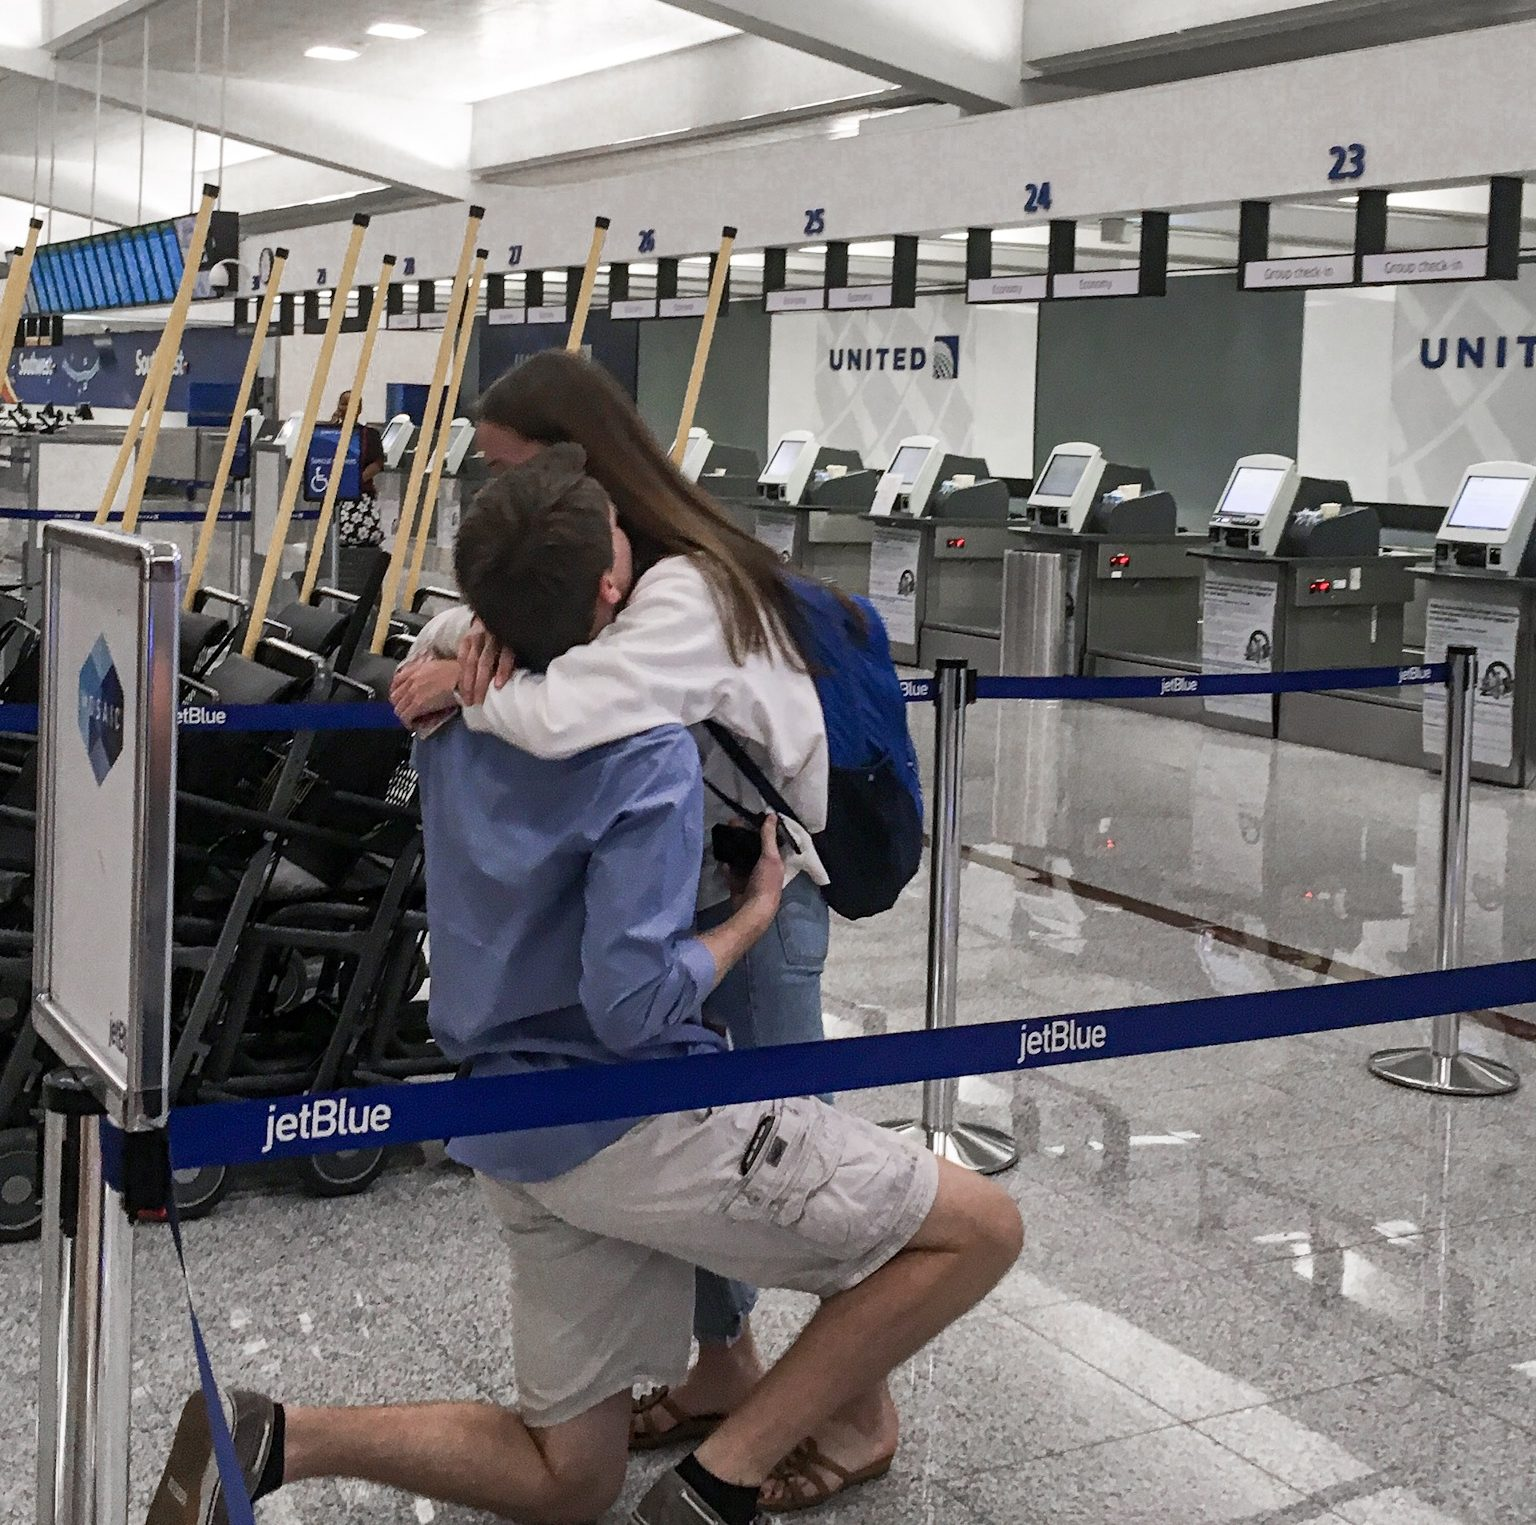 Wedding Proposal Ideas in Airport